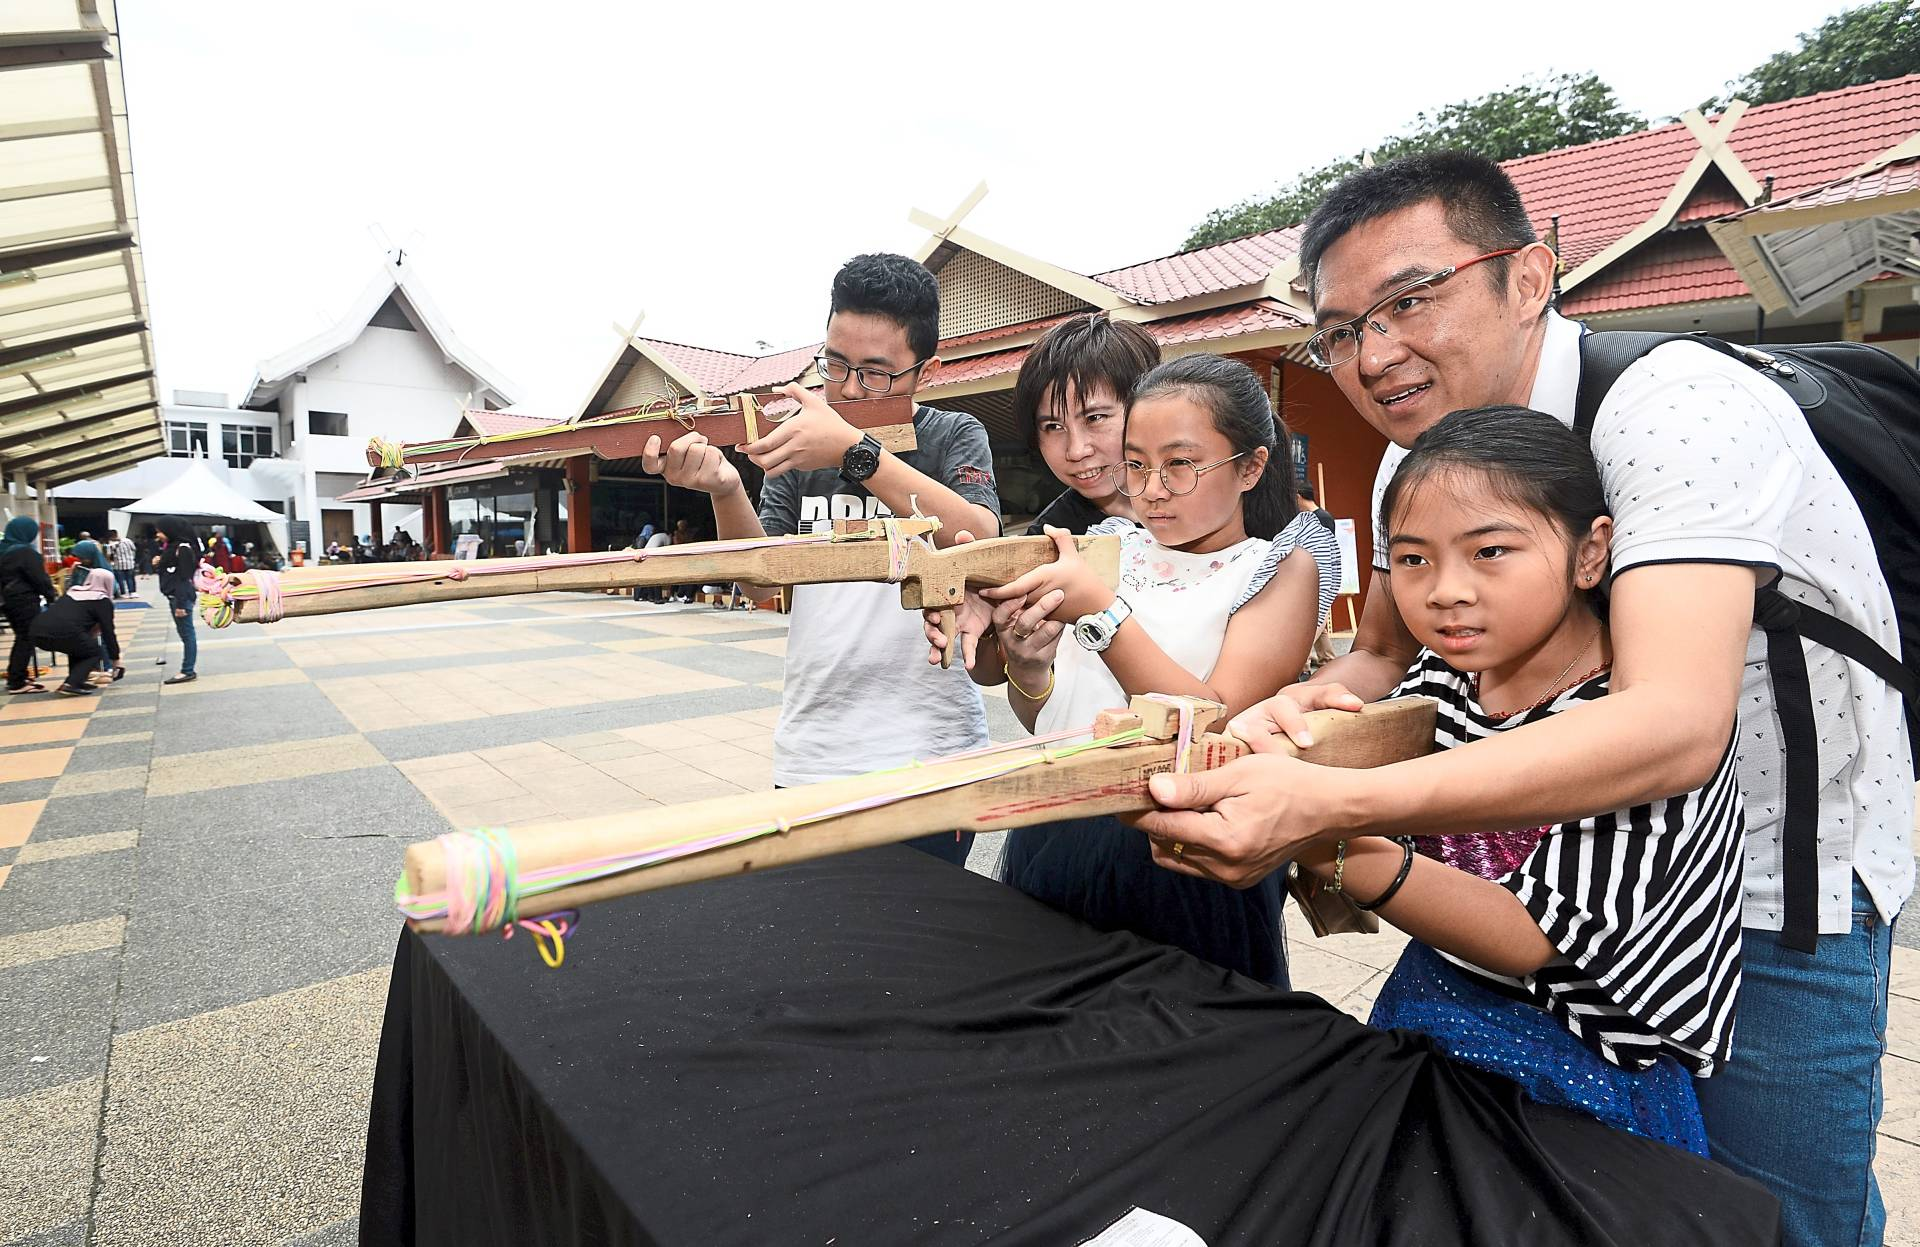 Choy (in white shirt, right, 2nd row) and his wife Lee Mei Tin (2nd from left, 2nd row) showing their kids (from left, first row) Choy Min Han, Choy Qin Lin and Chon Qin Ru how to aim using a senapang kayu at the Muzium Negara's Nostalgia Anak Kampung programme.-  AZHAR MAHFOF/The Star